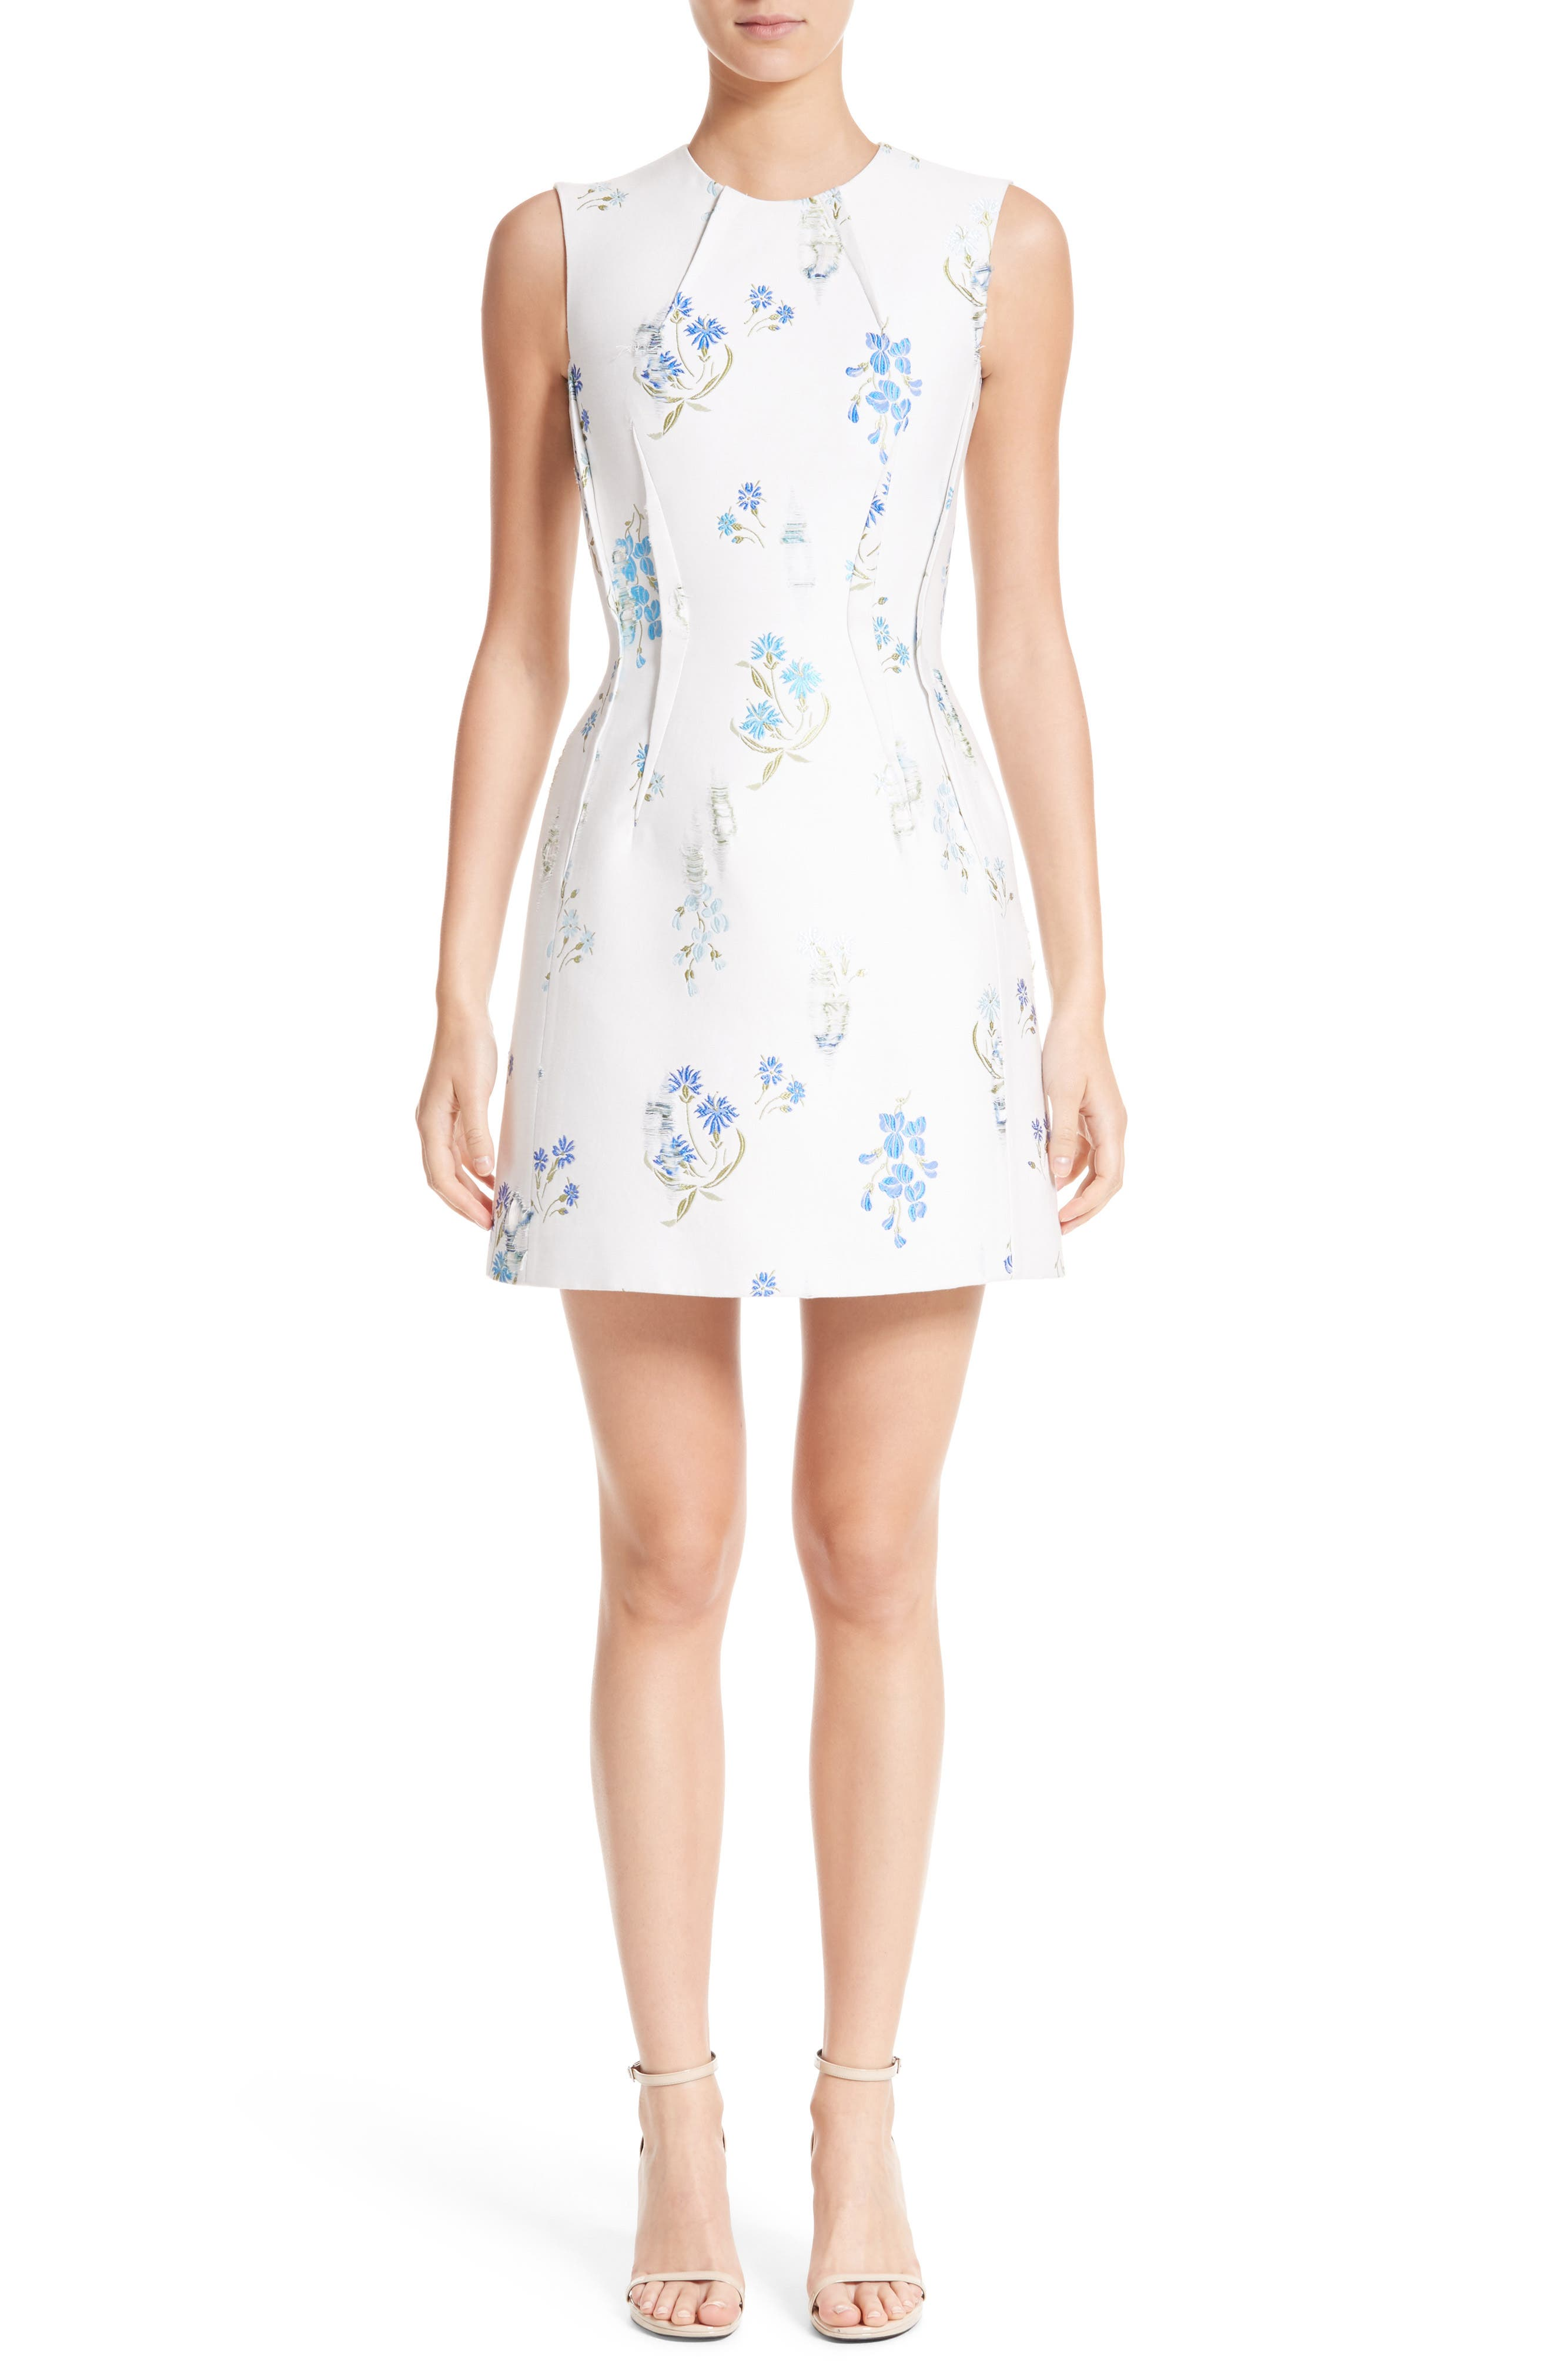 Distressed Floral Jacquard Fit & Flare Dress,                         Main,                         color, White/ Blue